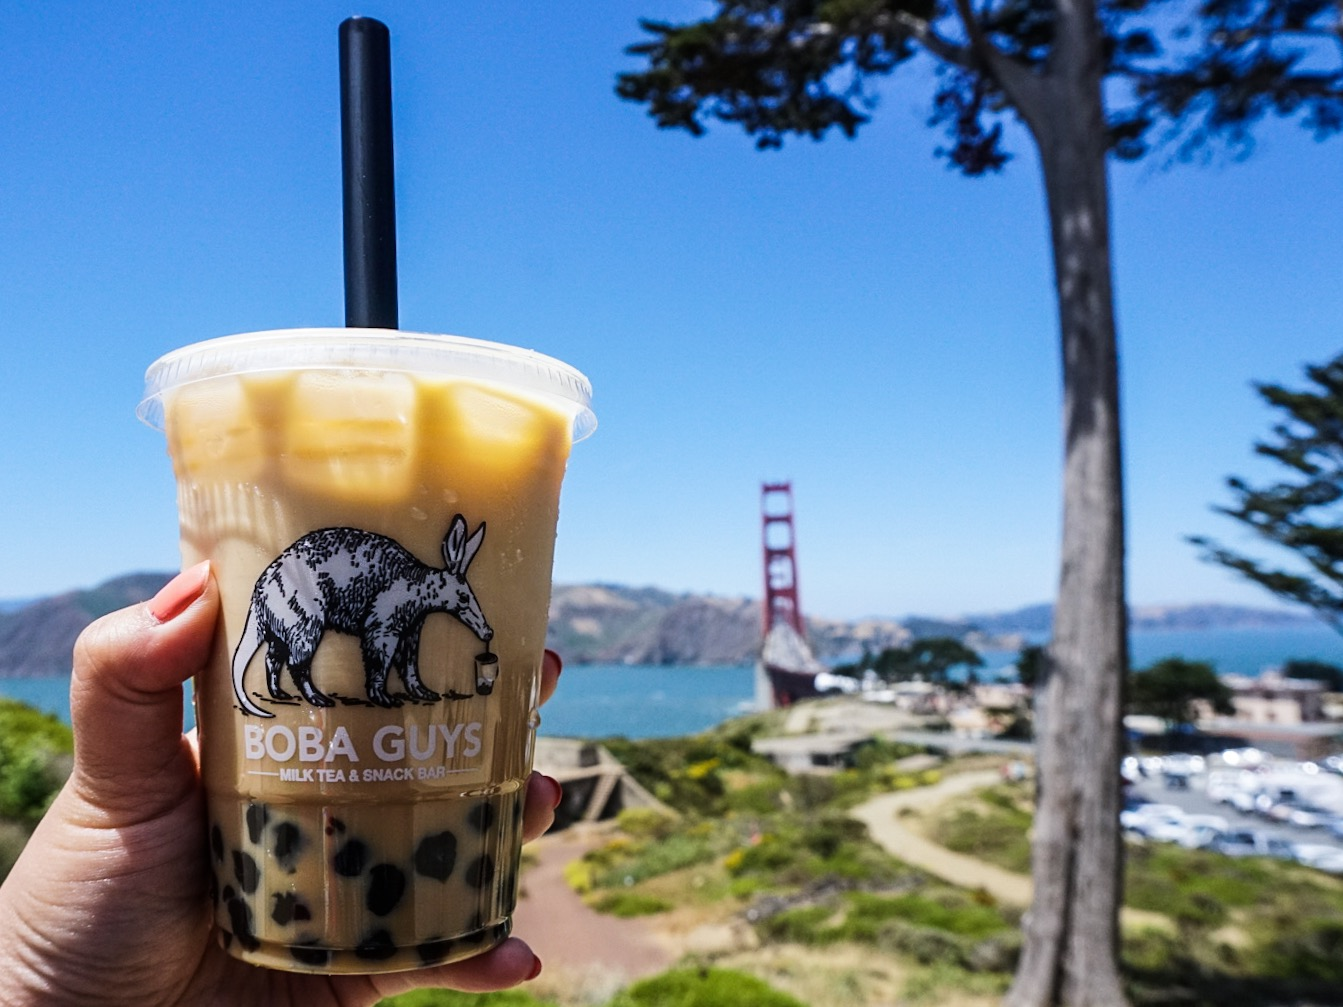 Original Milk Tea from Boba Guys x Golden Gate Bridge